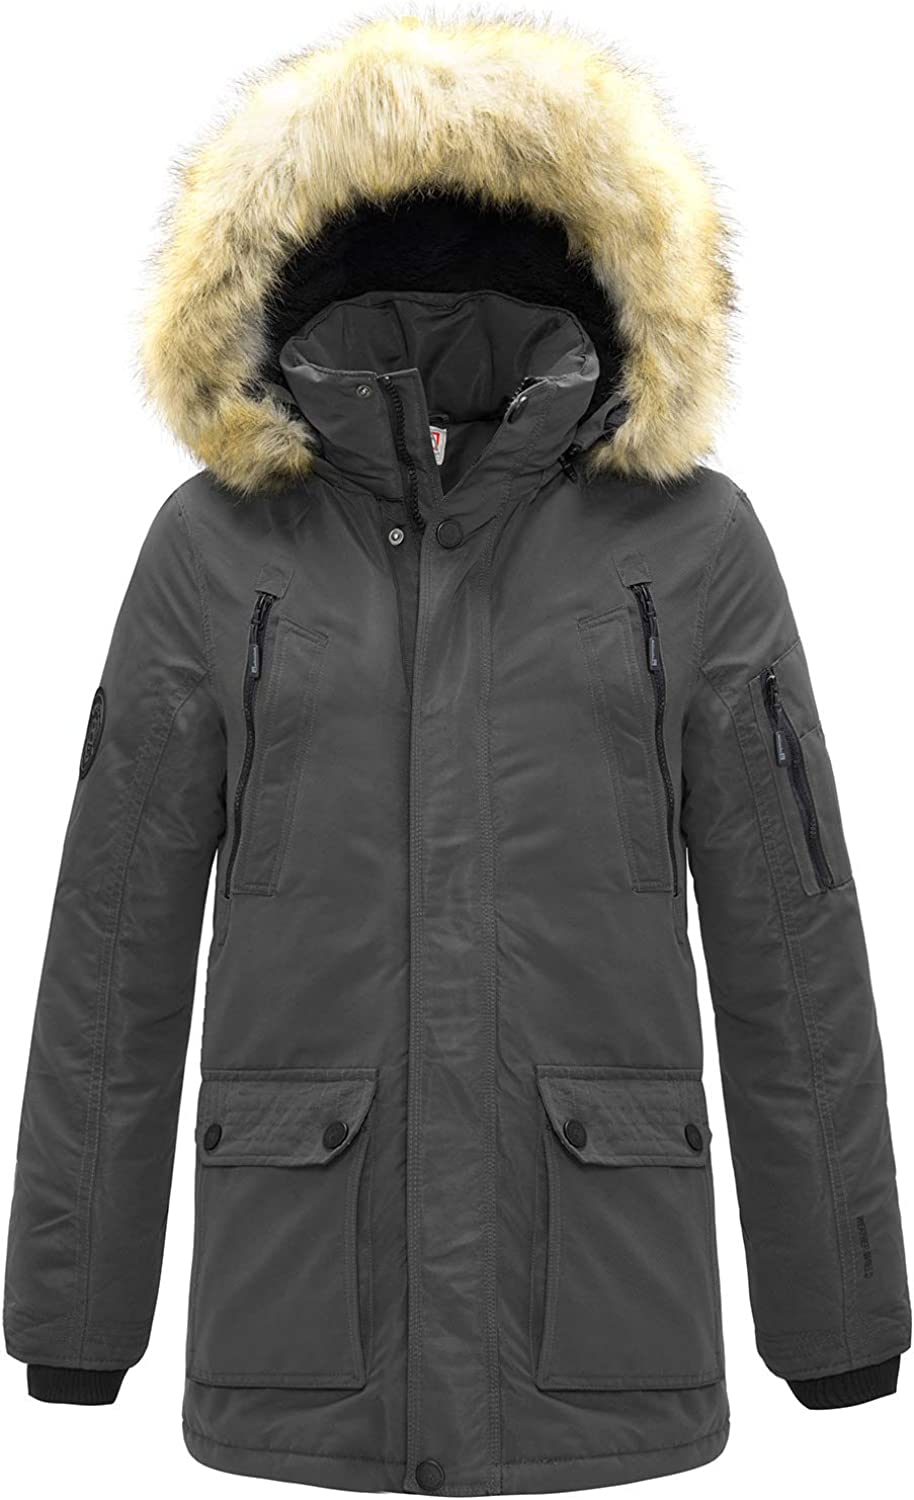 SwissWell Parka Jacket Mens Coats with Fur Hood Winter Warmth Thicken Casual Outwear Coat